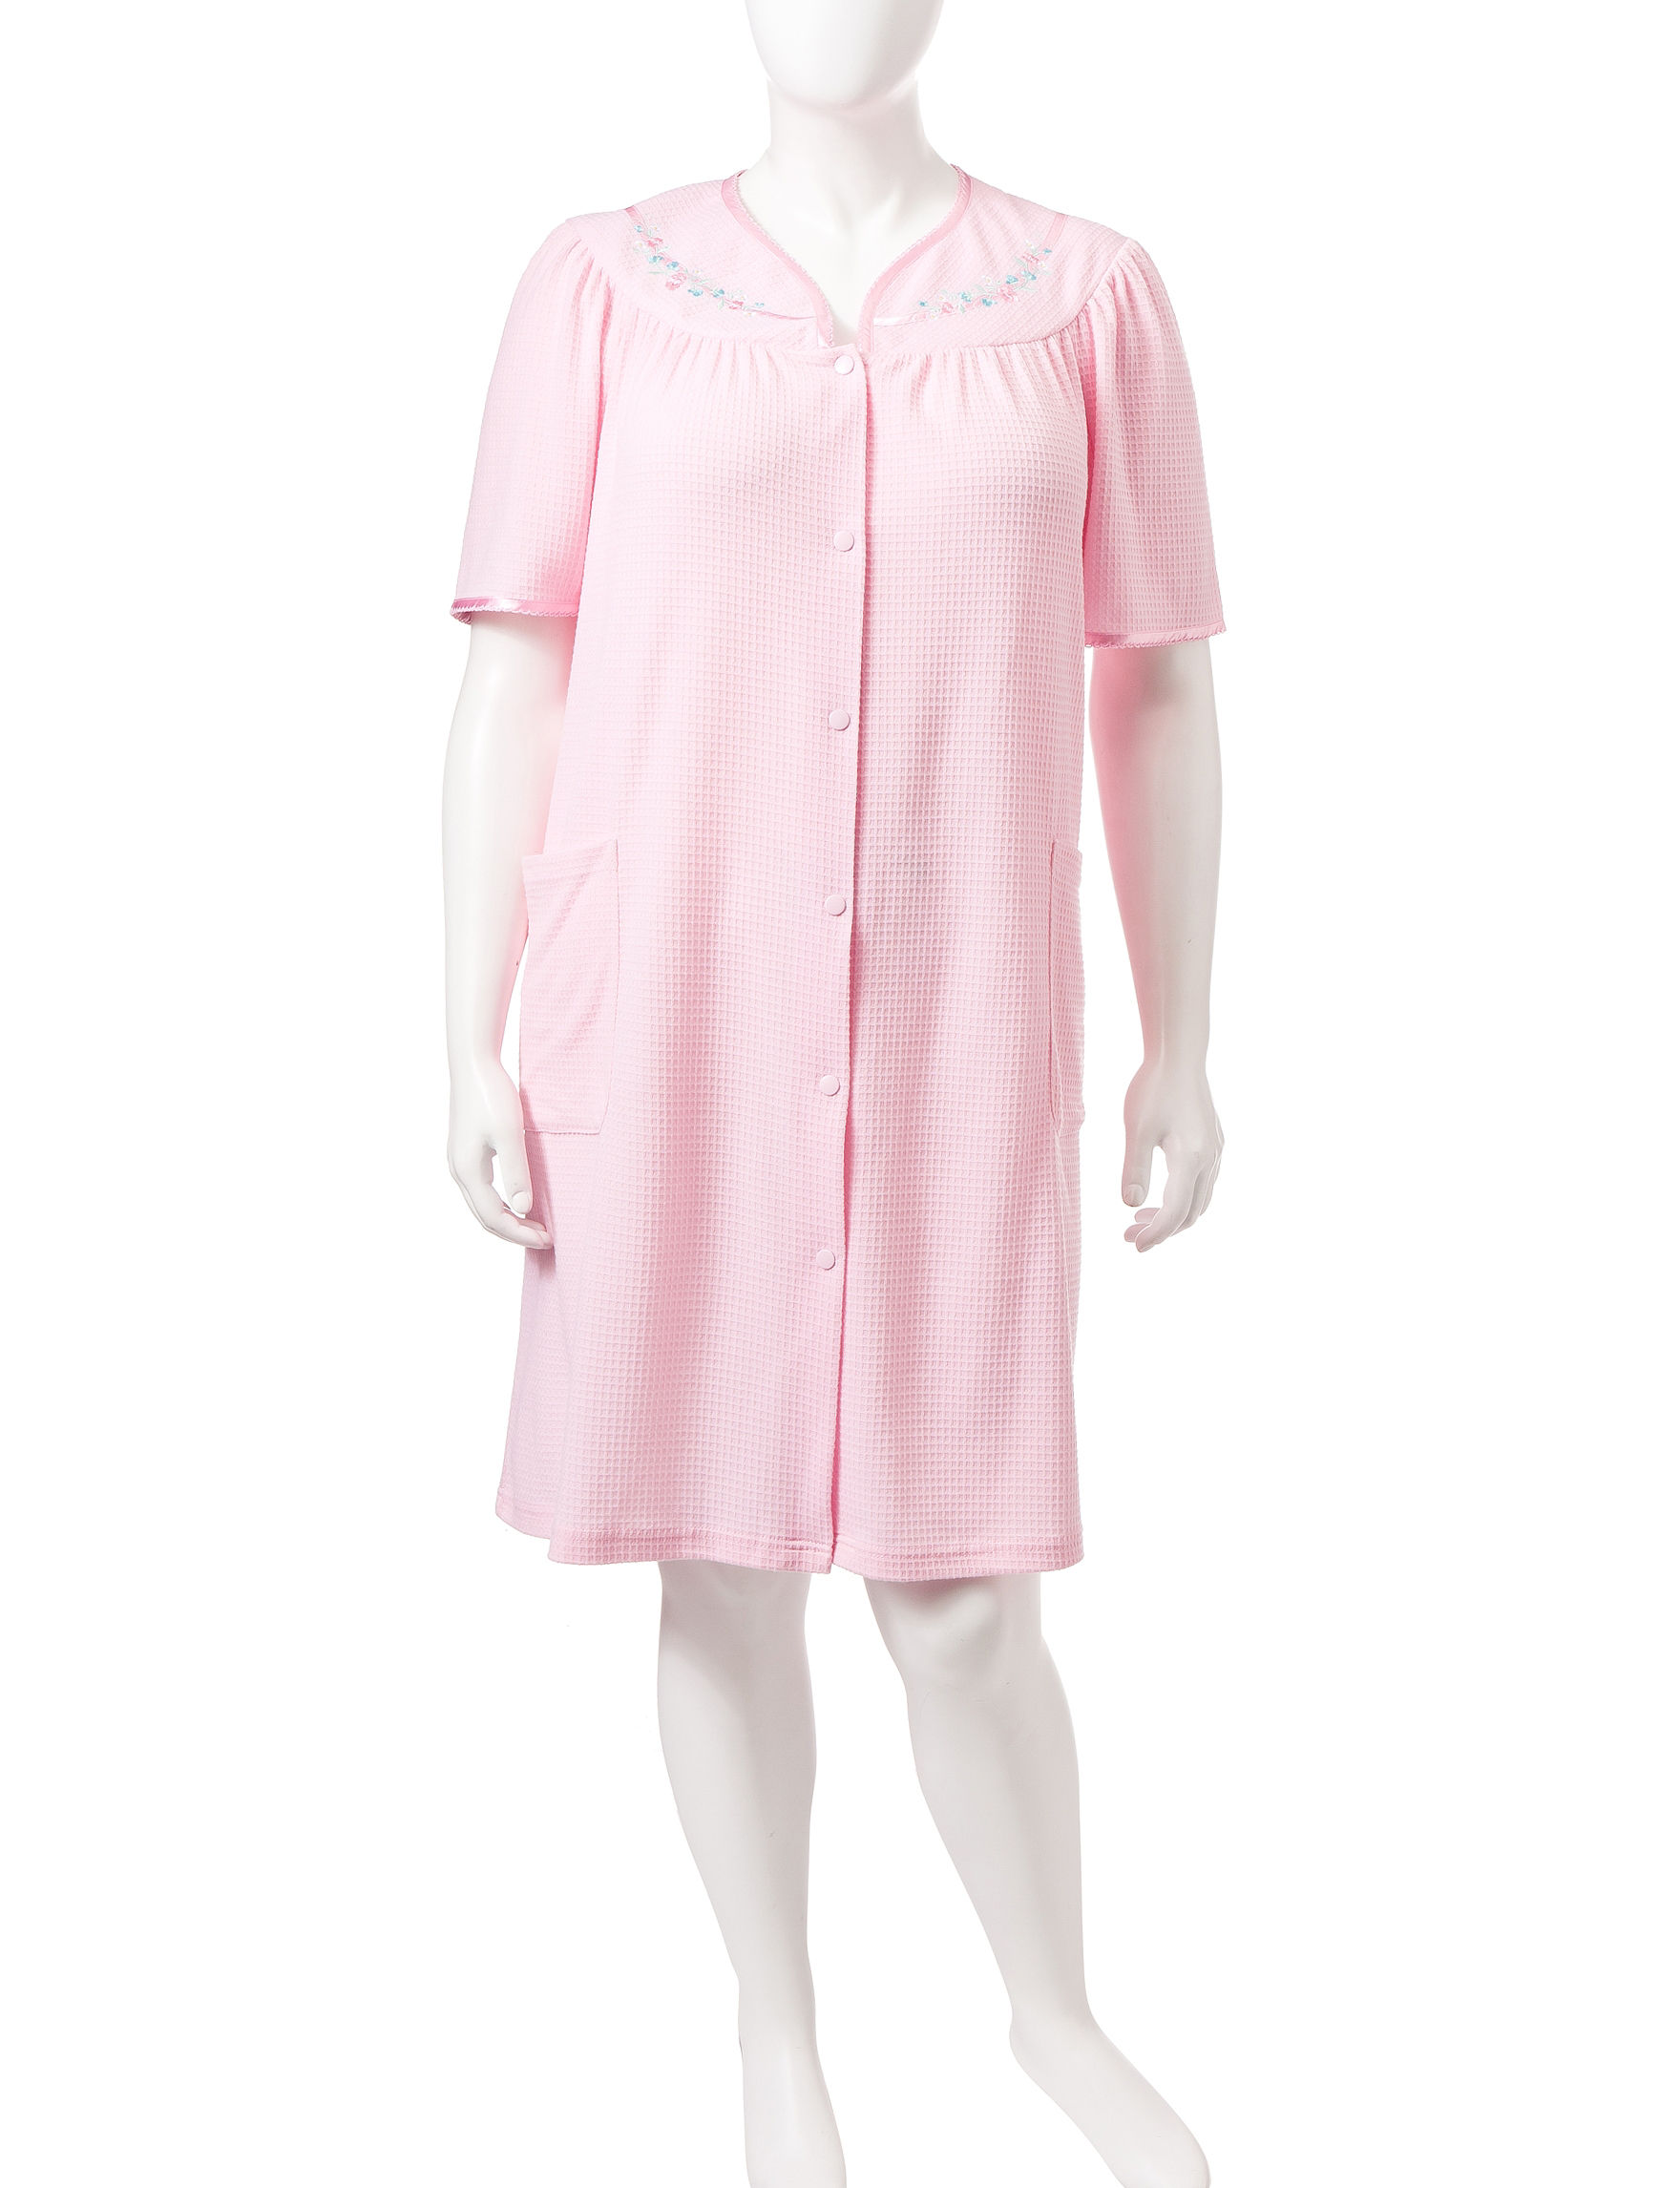 Jasmine Rose Pink Robes, Wraps & Dusters